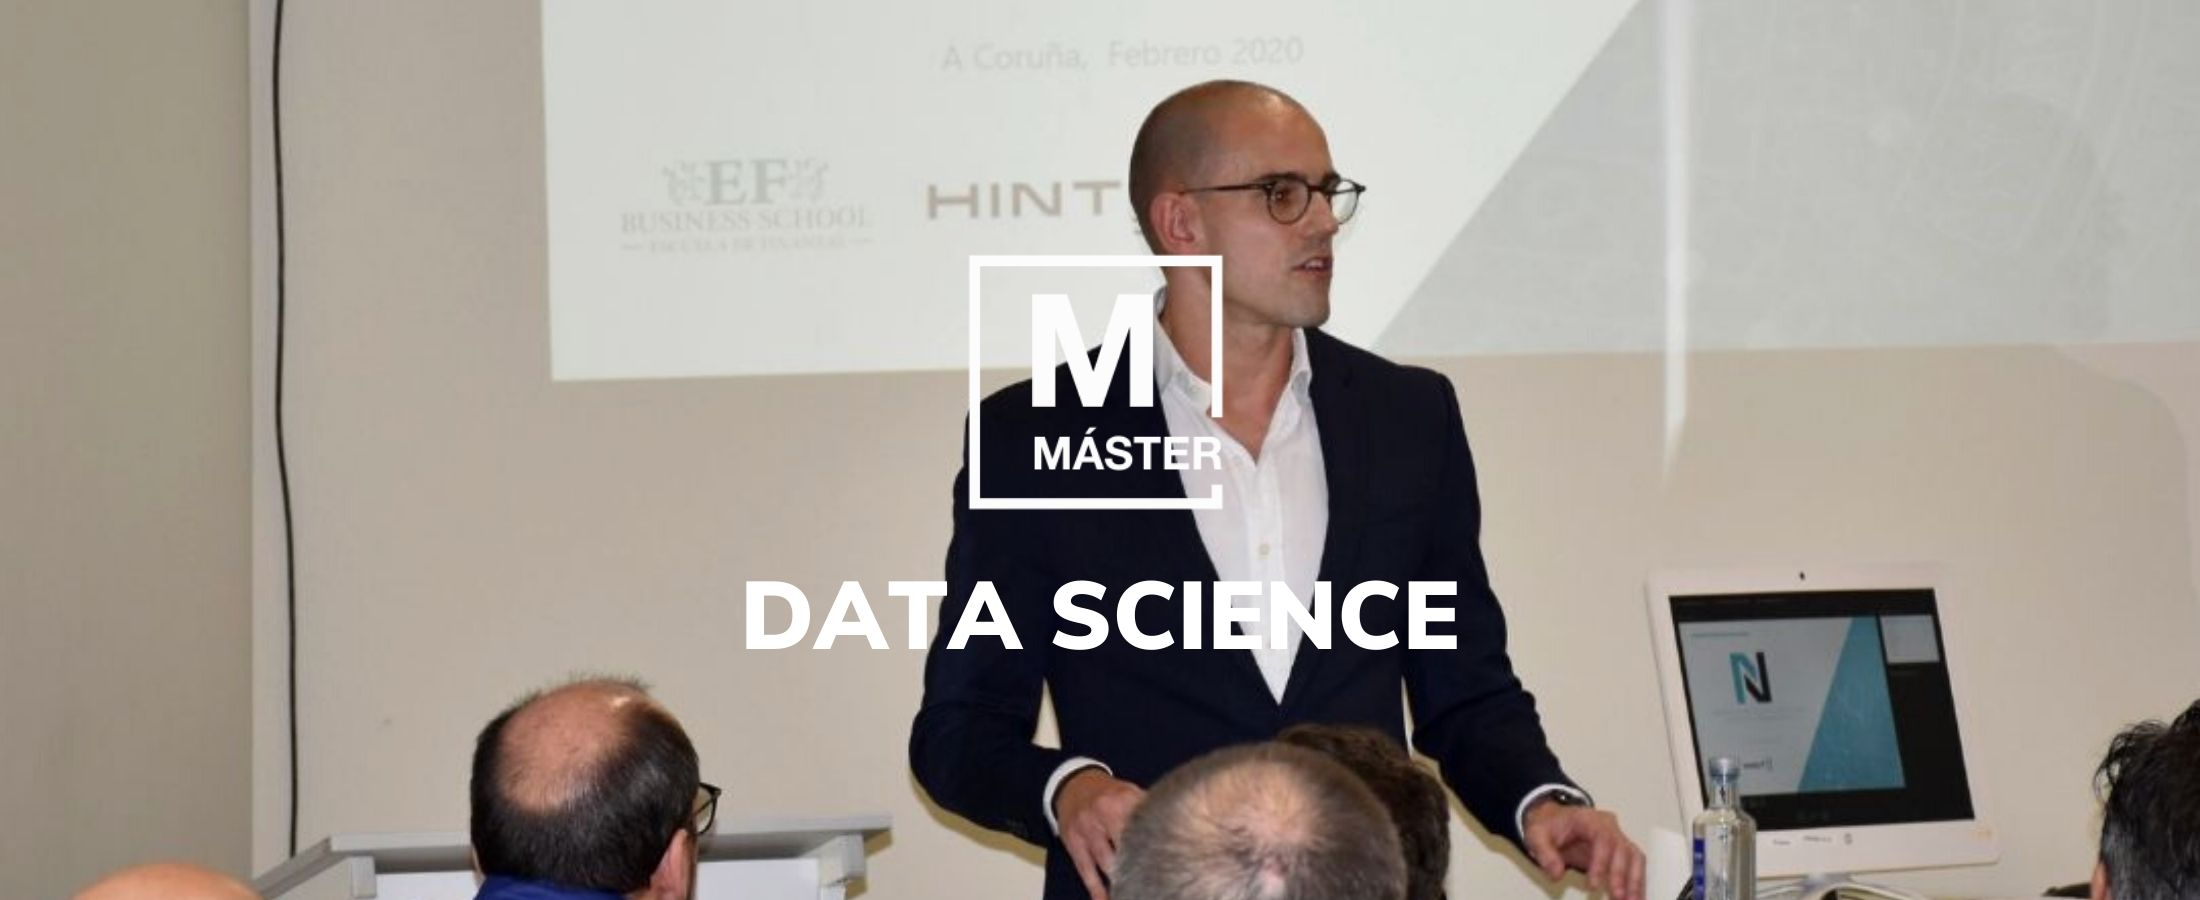 Máster Data Science